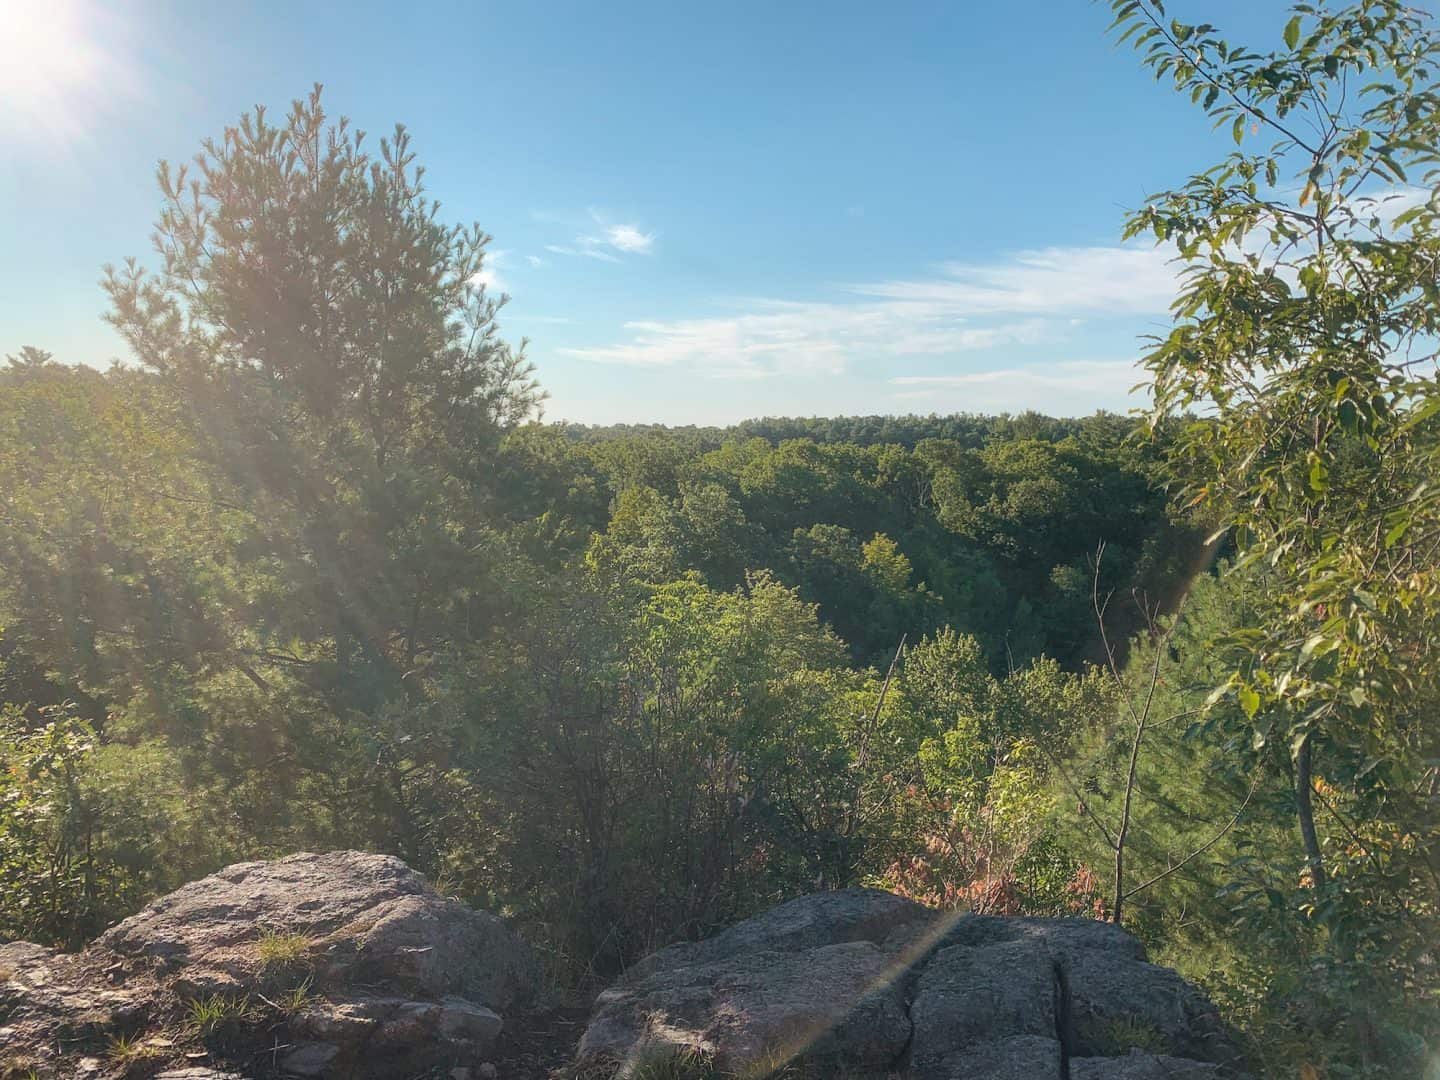 Hiking at Marble Rock Conservation Park in Gananoque, Ontario